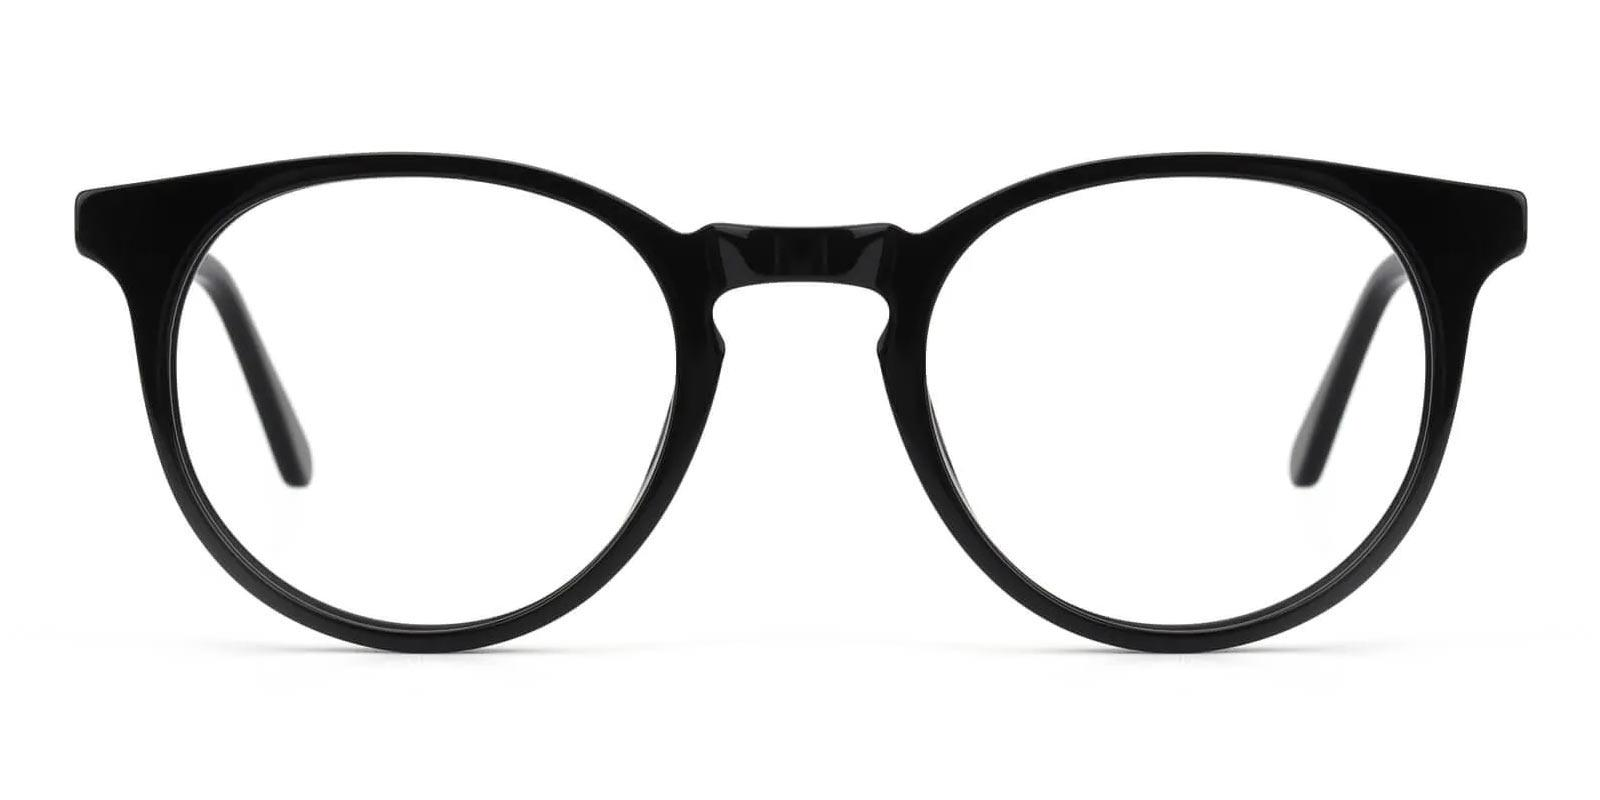 March-Black-Round-Acetate-Eyeglasses-additional2